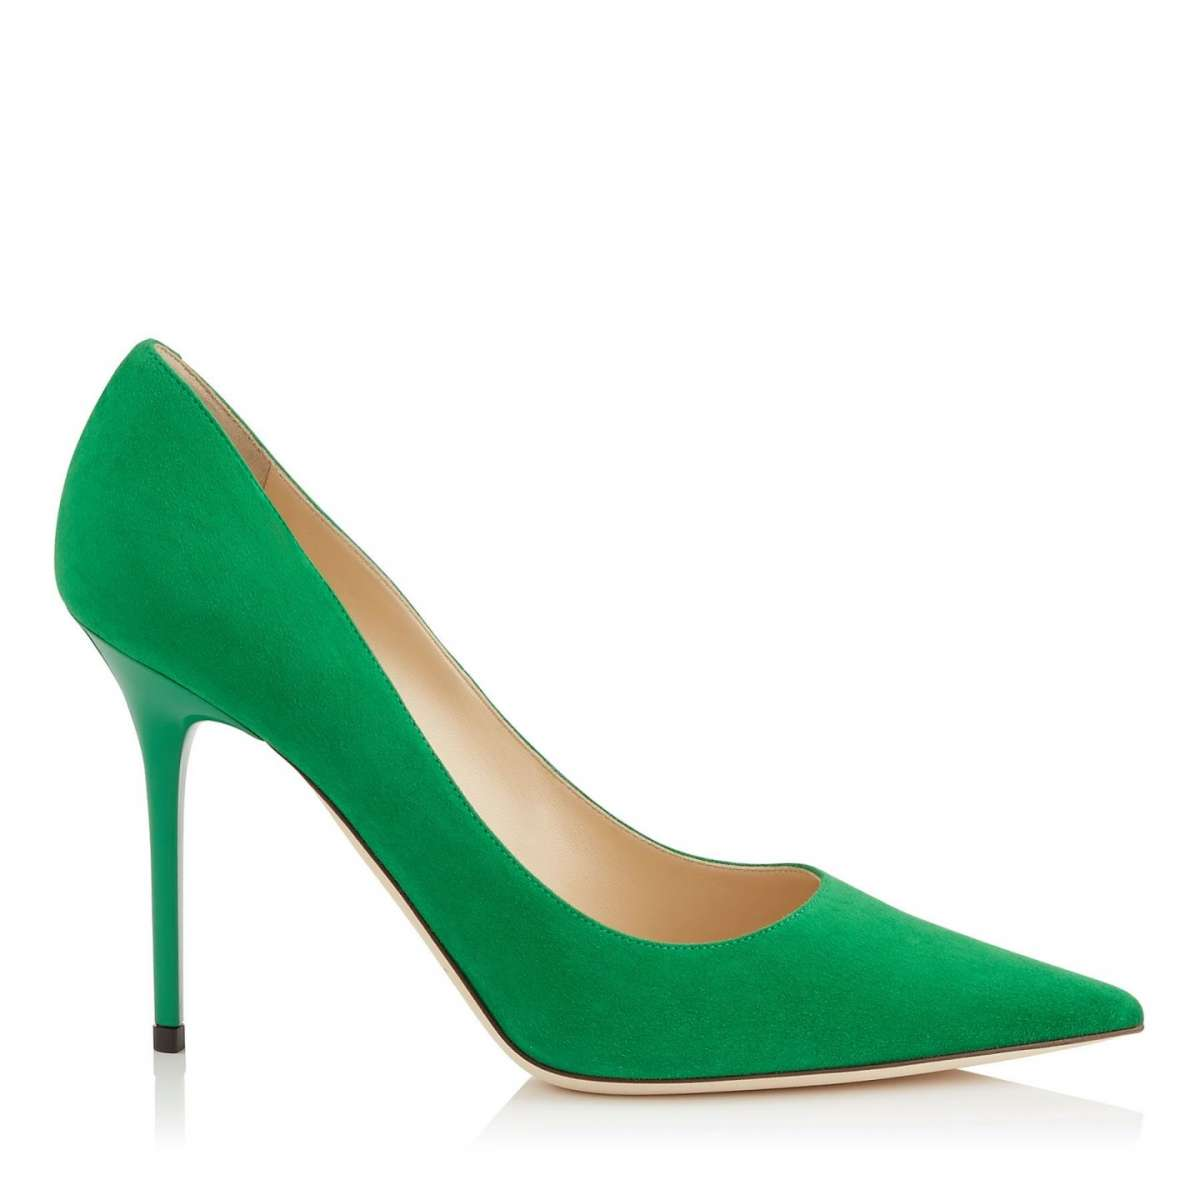 Pumps verdi